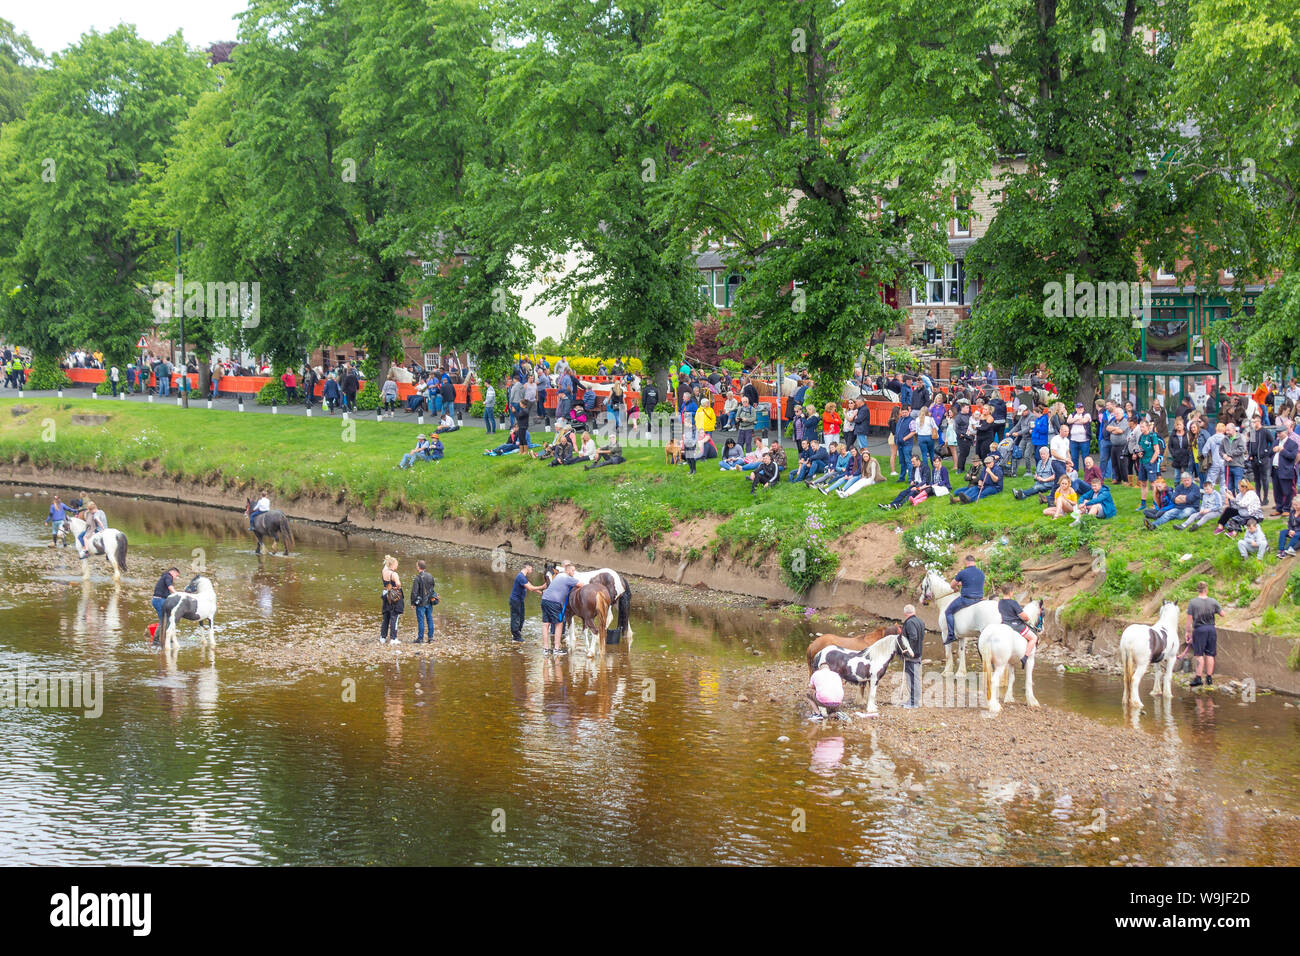 Appleby-in-Westmorland, Cumbria, England.  The Appleby Horse Fair, an annual gathering of Gypsies and Travellers and their horses. Stock Photo